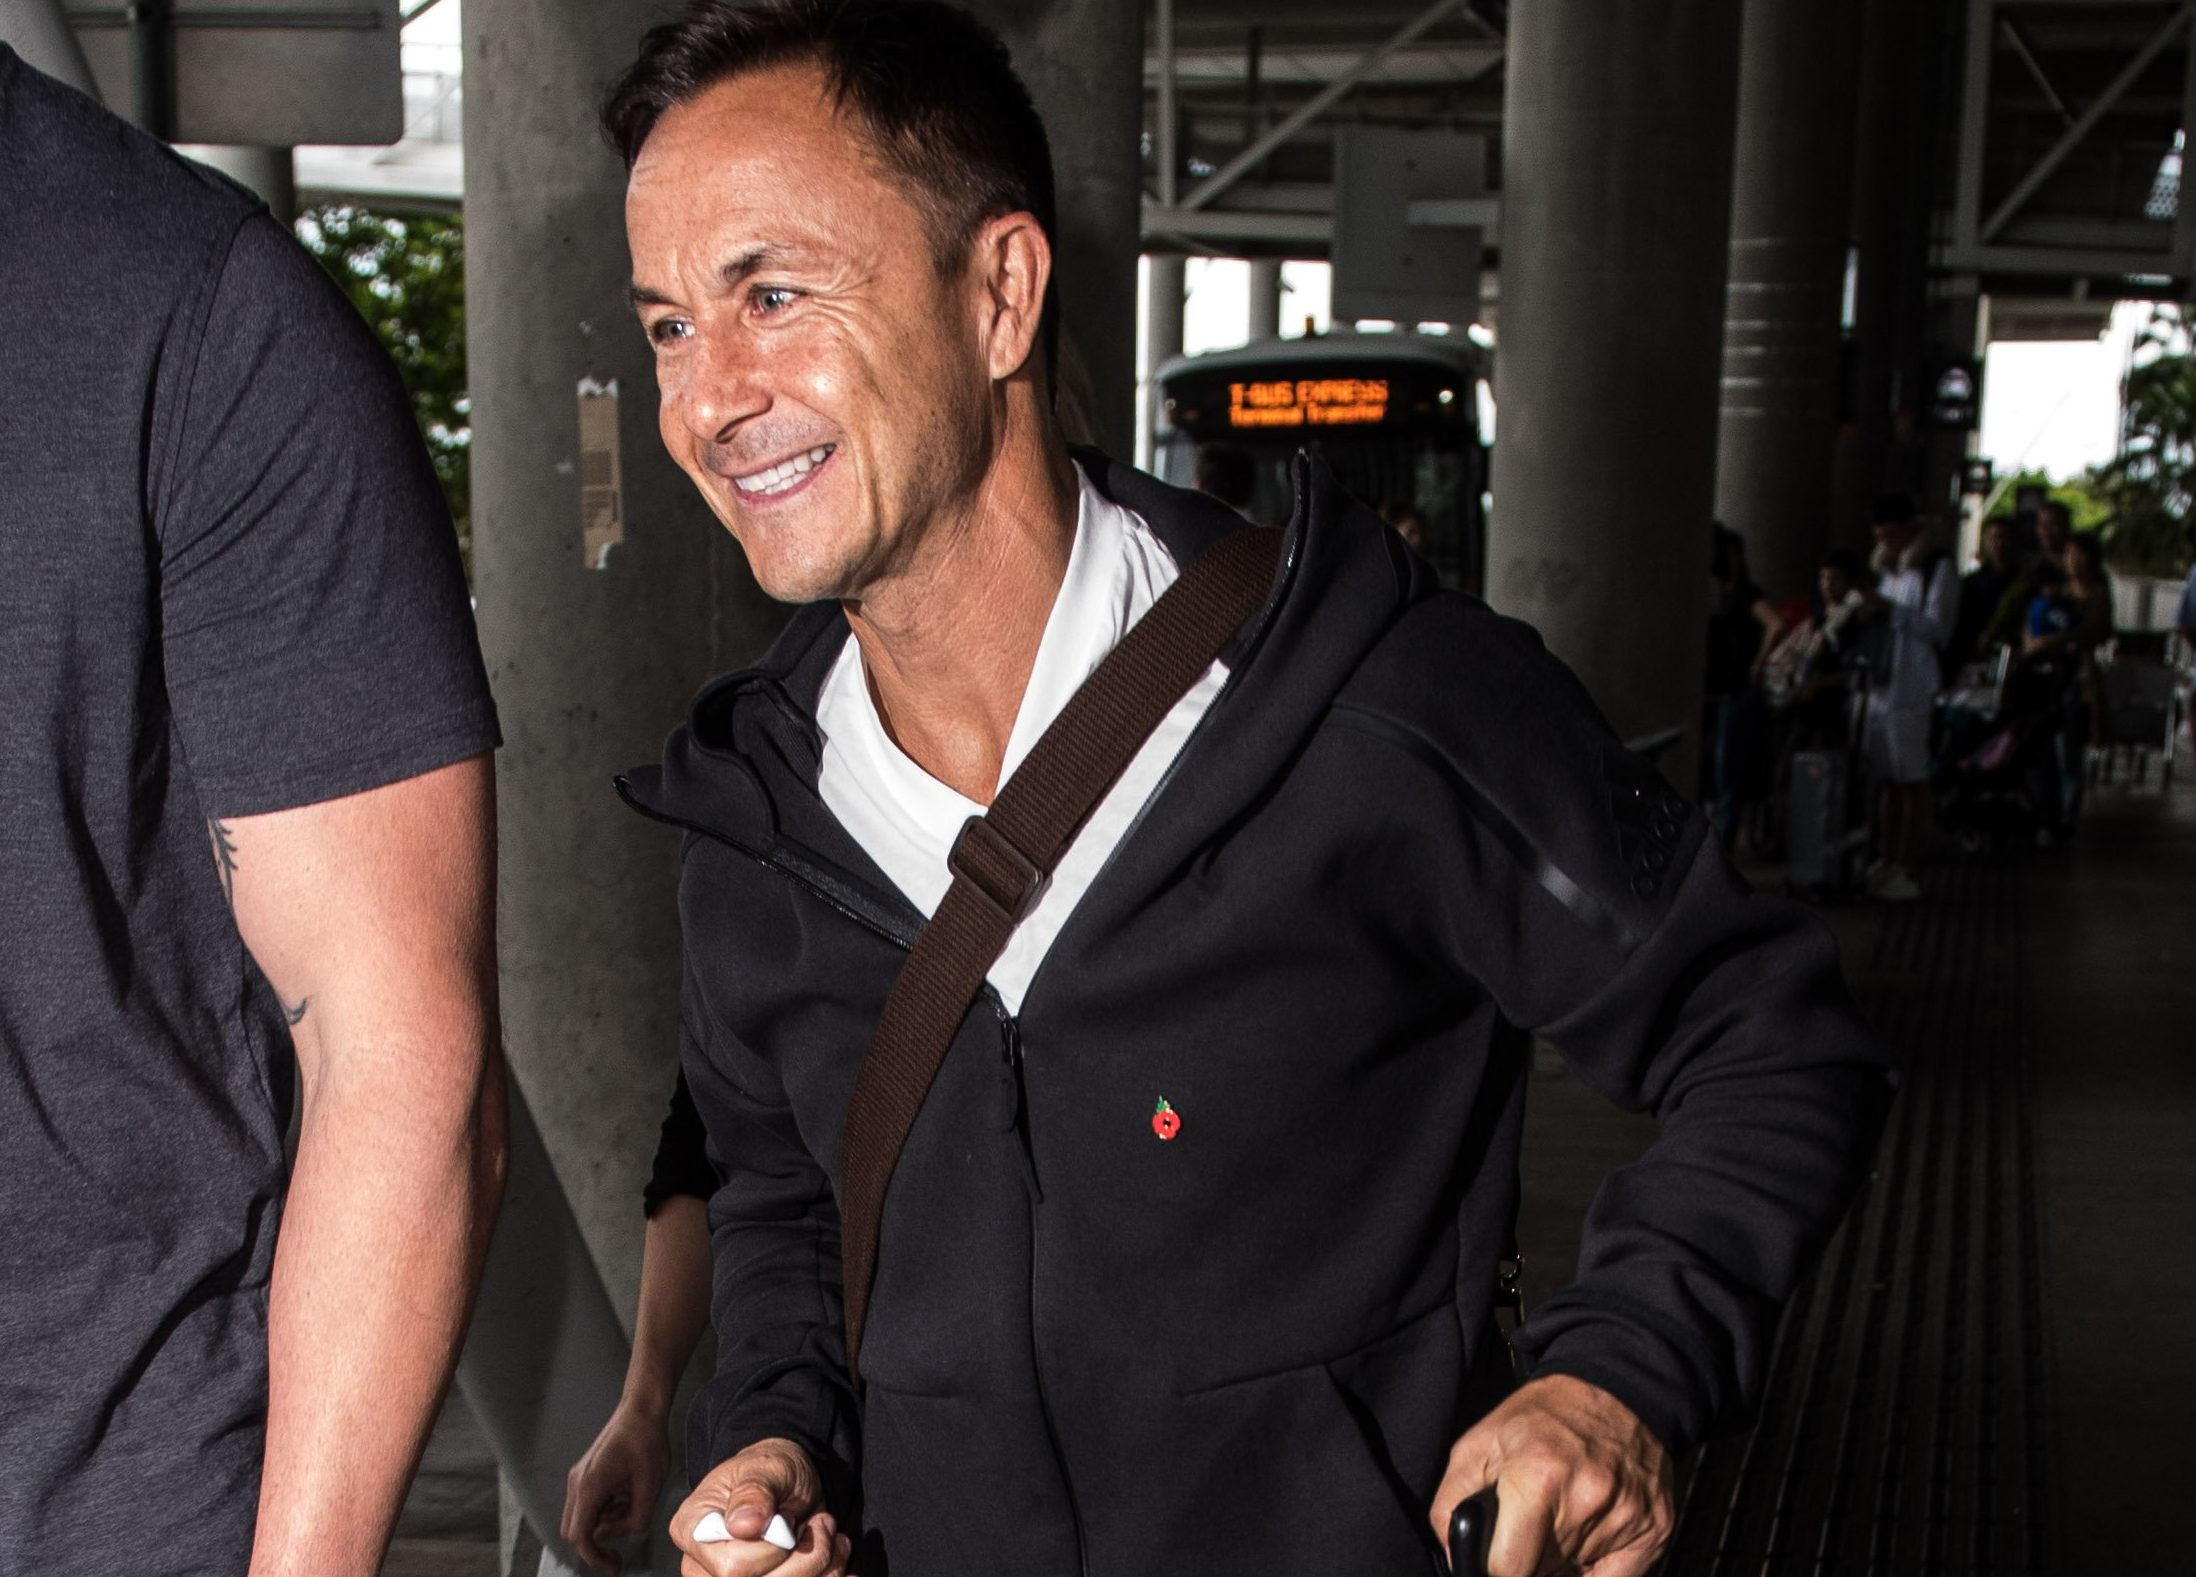 Former footballer Dennis Wise enters the I'm A Celebrity fray as he touches down in Australia